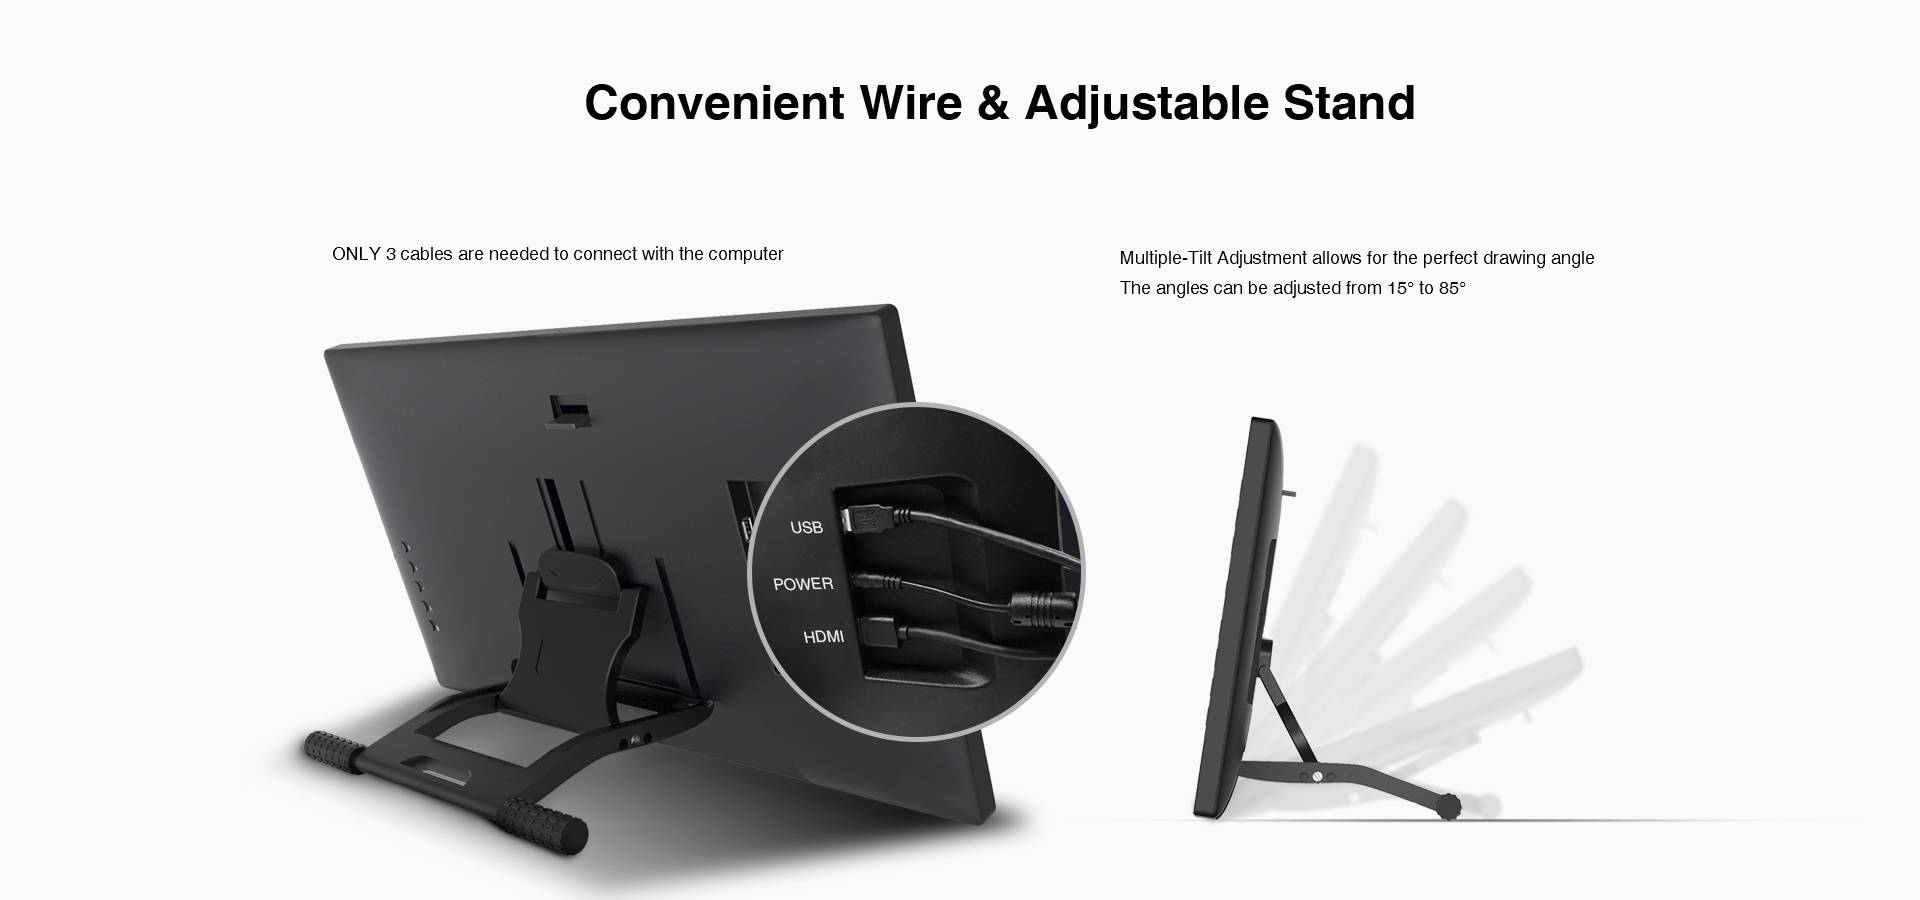 Convenient wire & adjustable stand